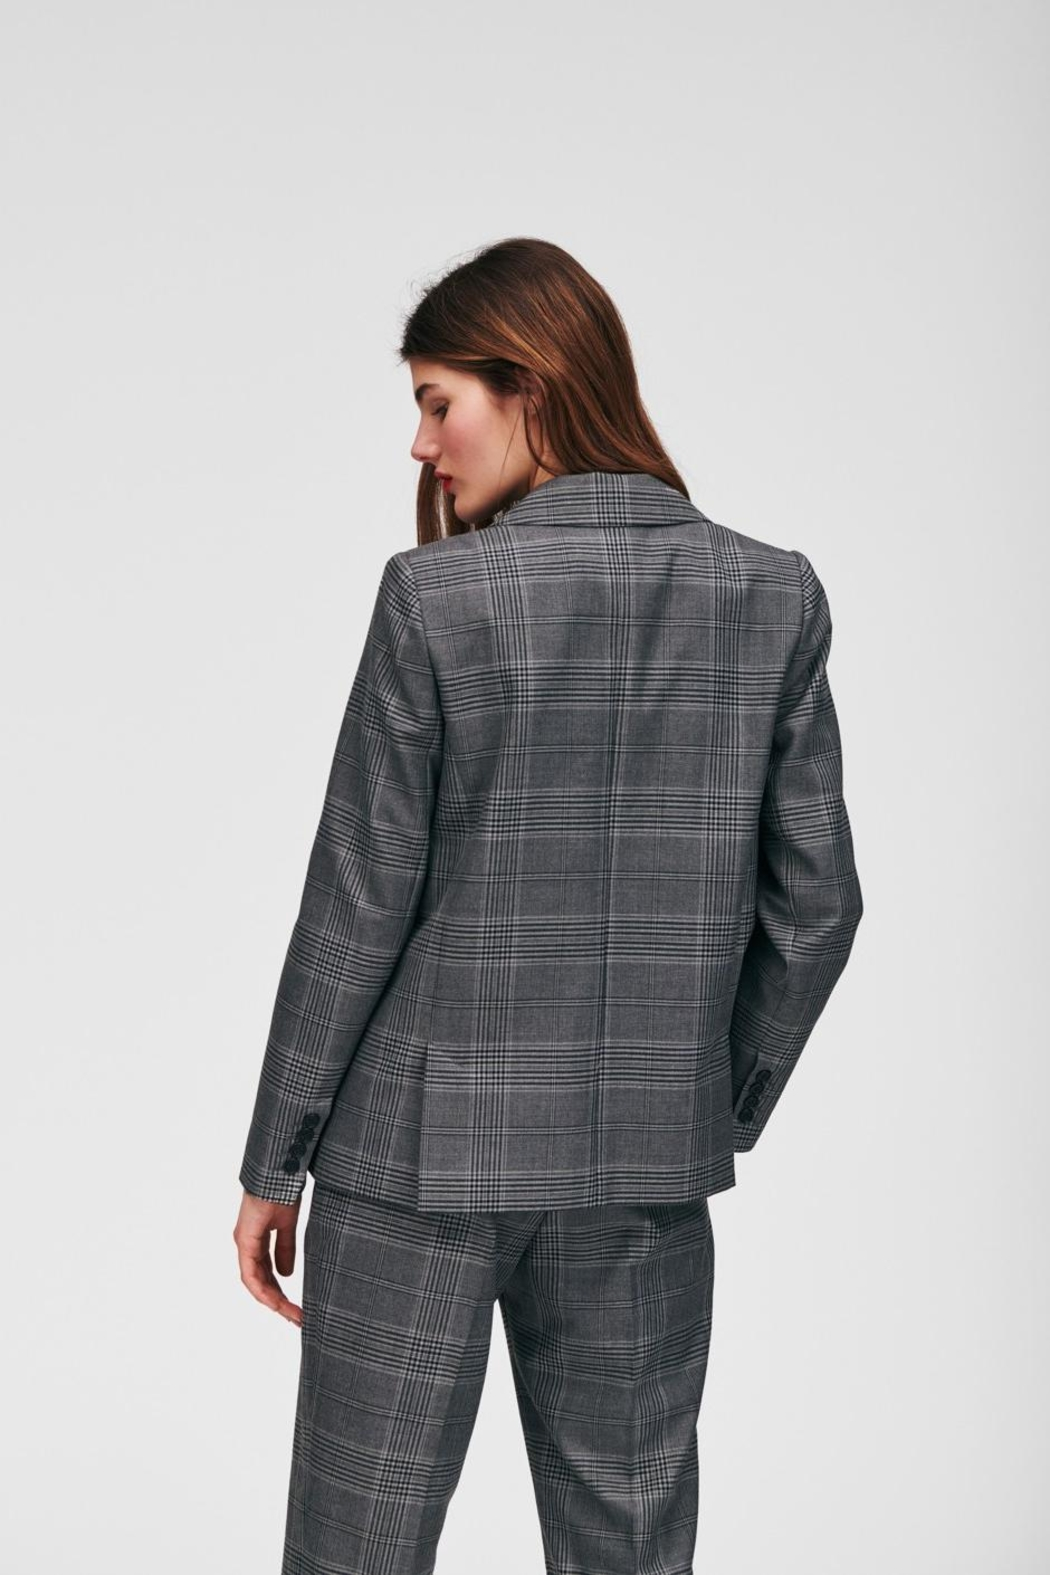 Tara Jarmon Heather Plaid Blazer - Back Cropped Image